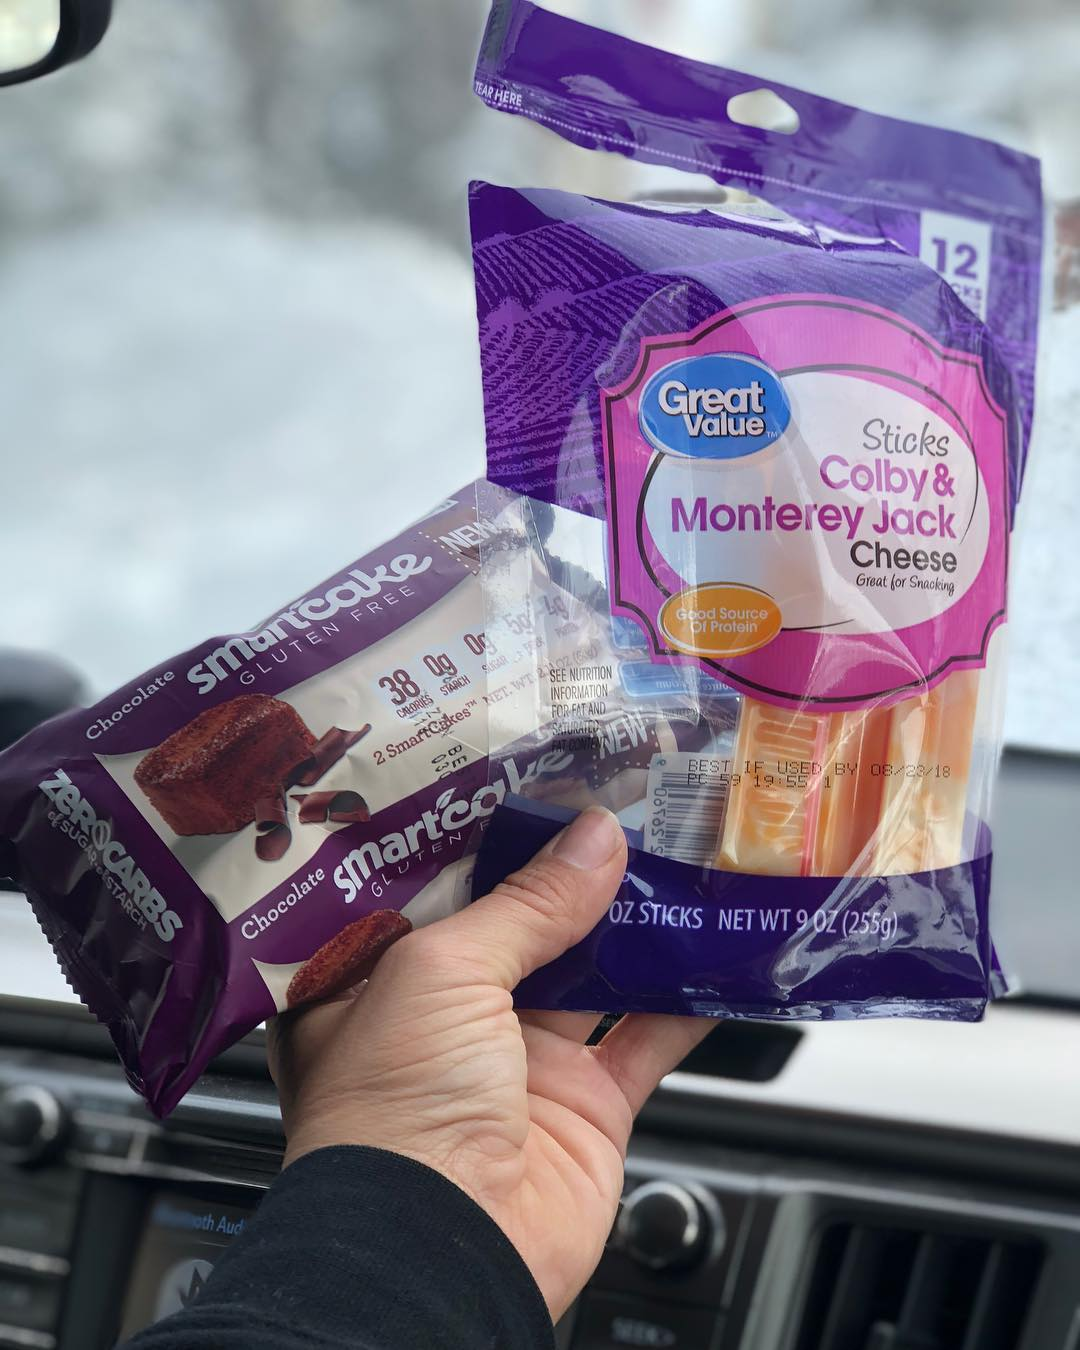 These were my keto snacks yesterday while snowboarding… @smartbakingcompany chocolate 0 net carb cakes, and @wamart Colby jack cheese sticks with 7g fat and 80 calories each… —— What are your snack goto's?